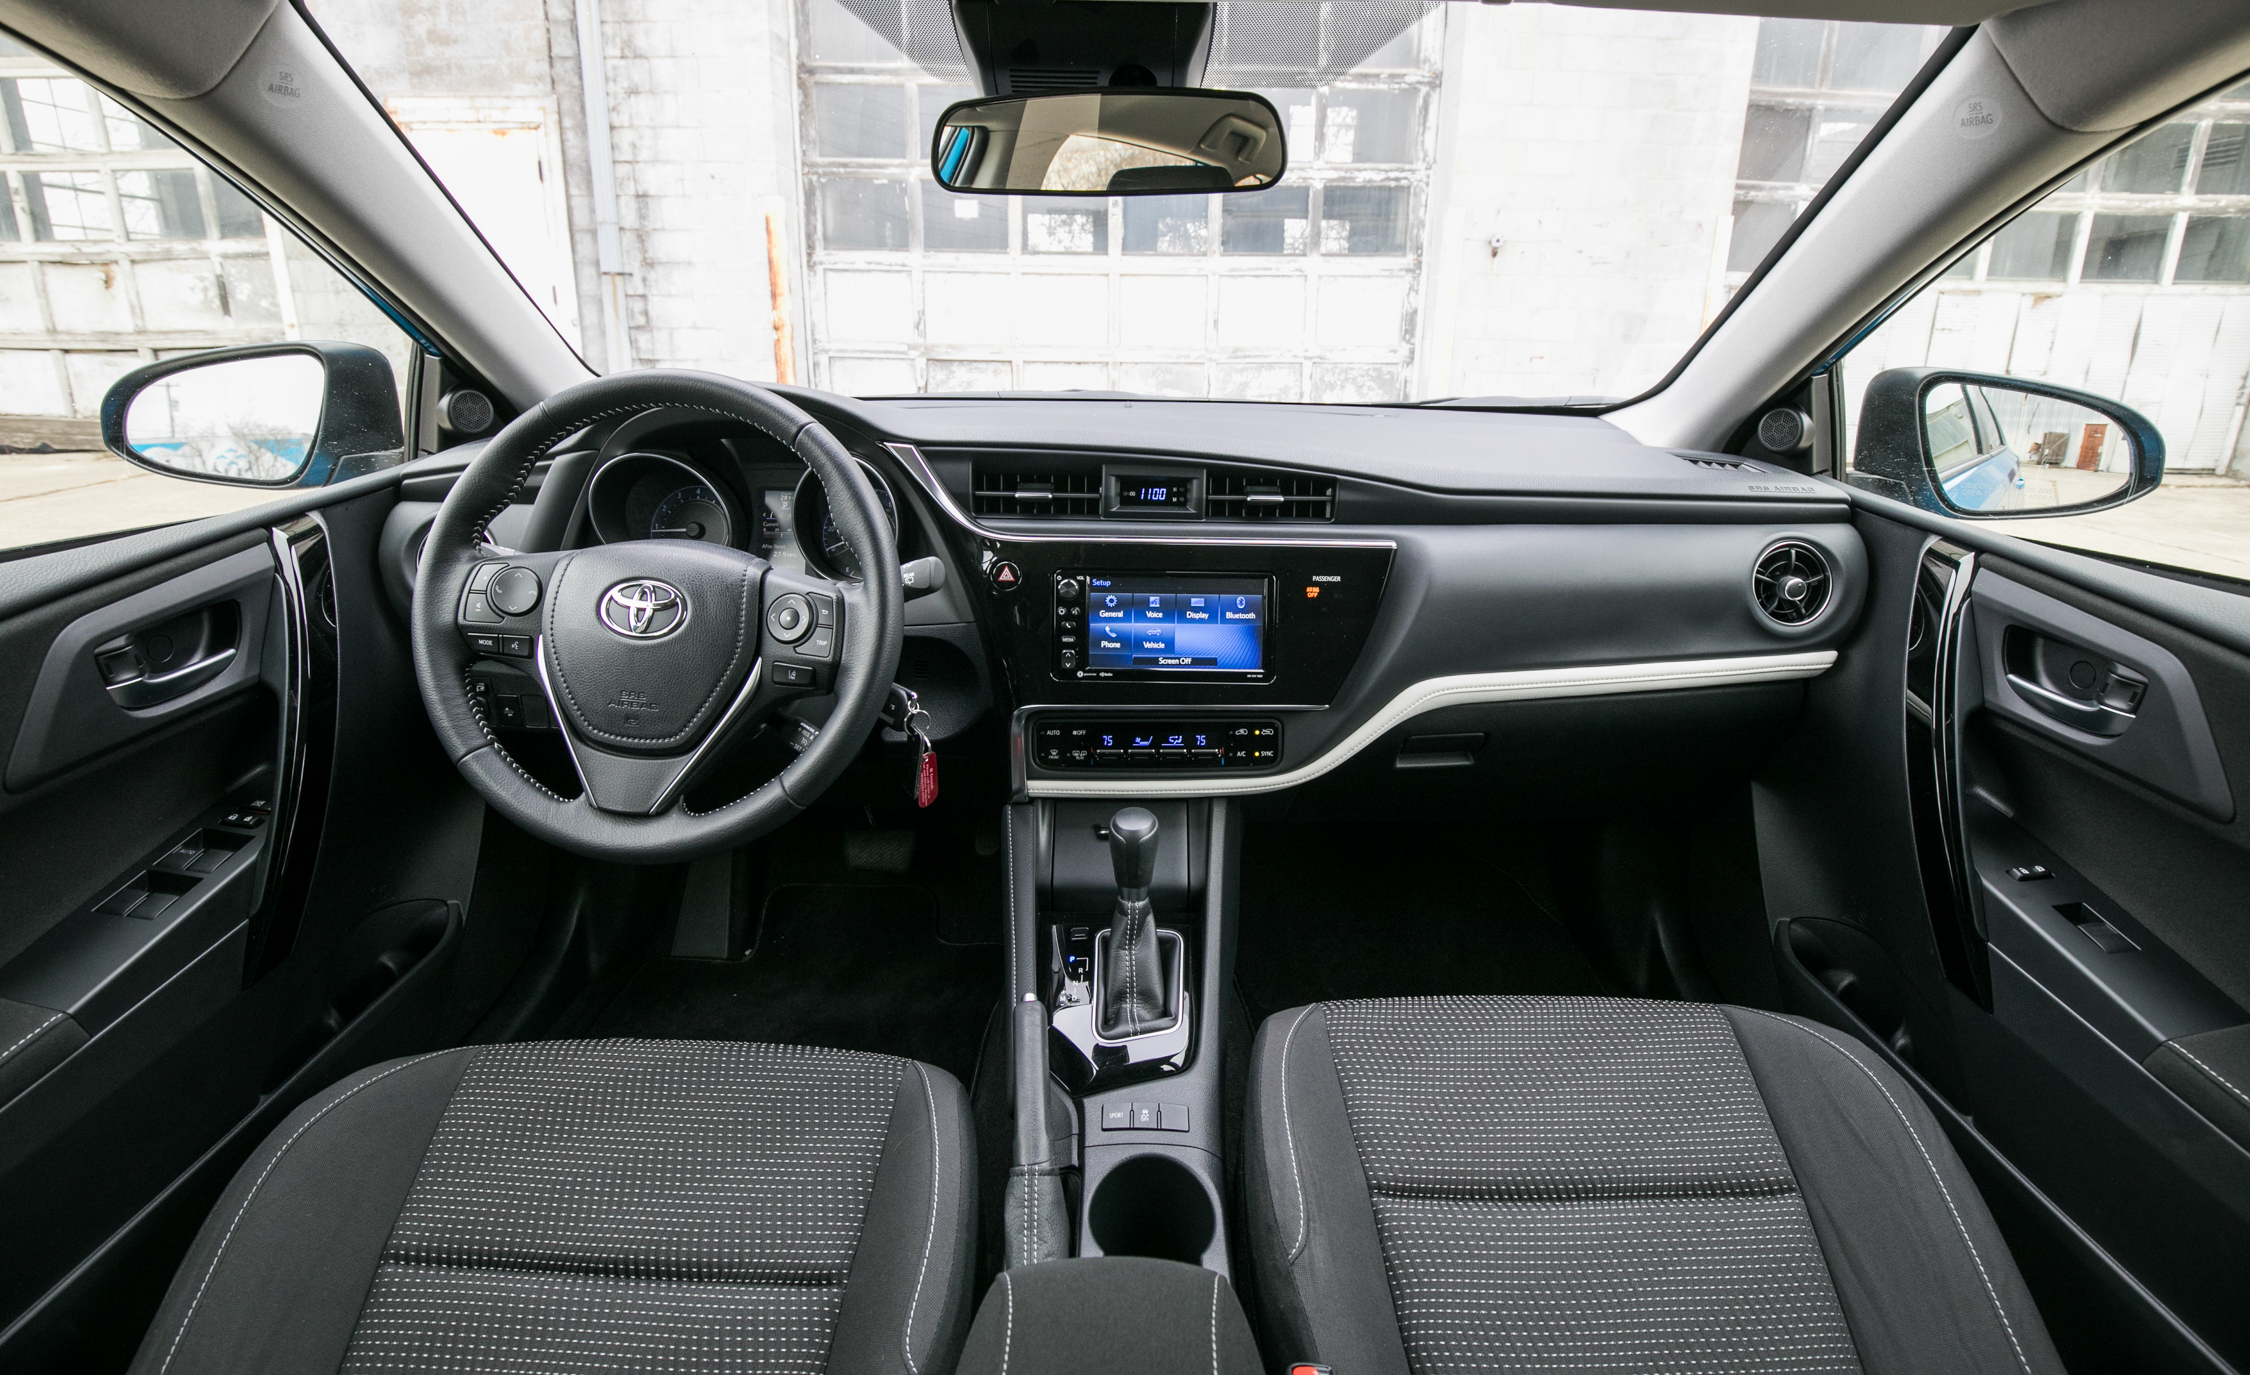 2017 Toyota Corolla IM Hatchback Interior Dashboard (Photo 24 of 52)